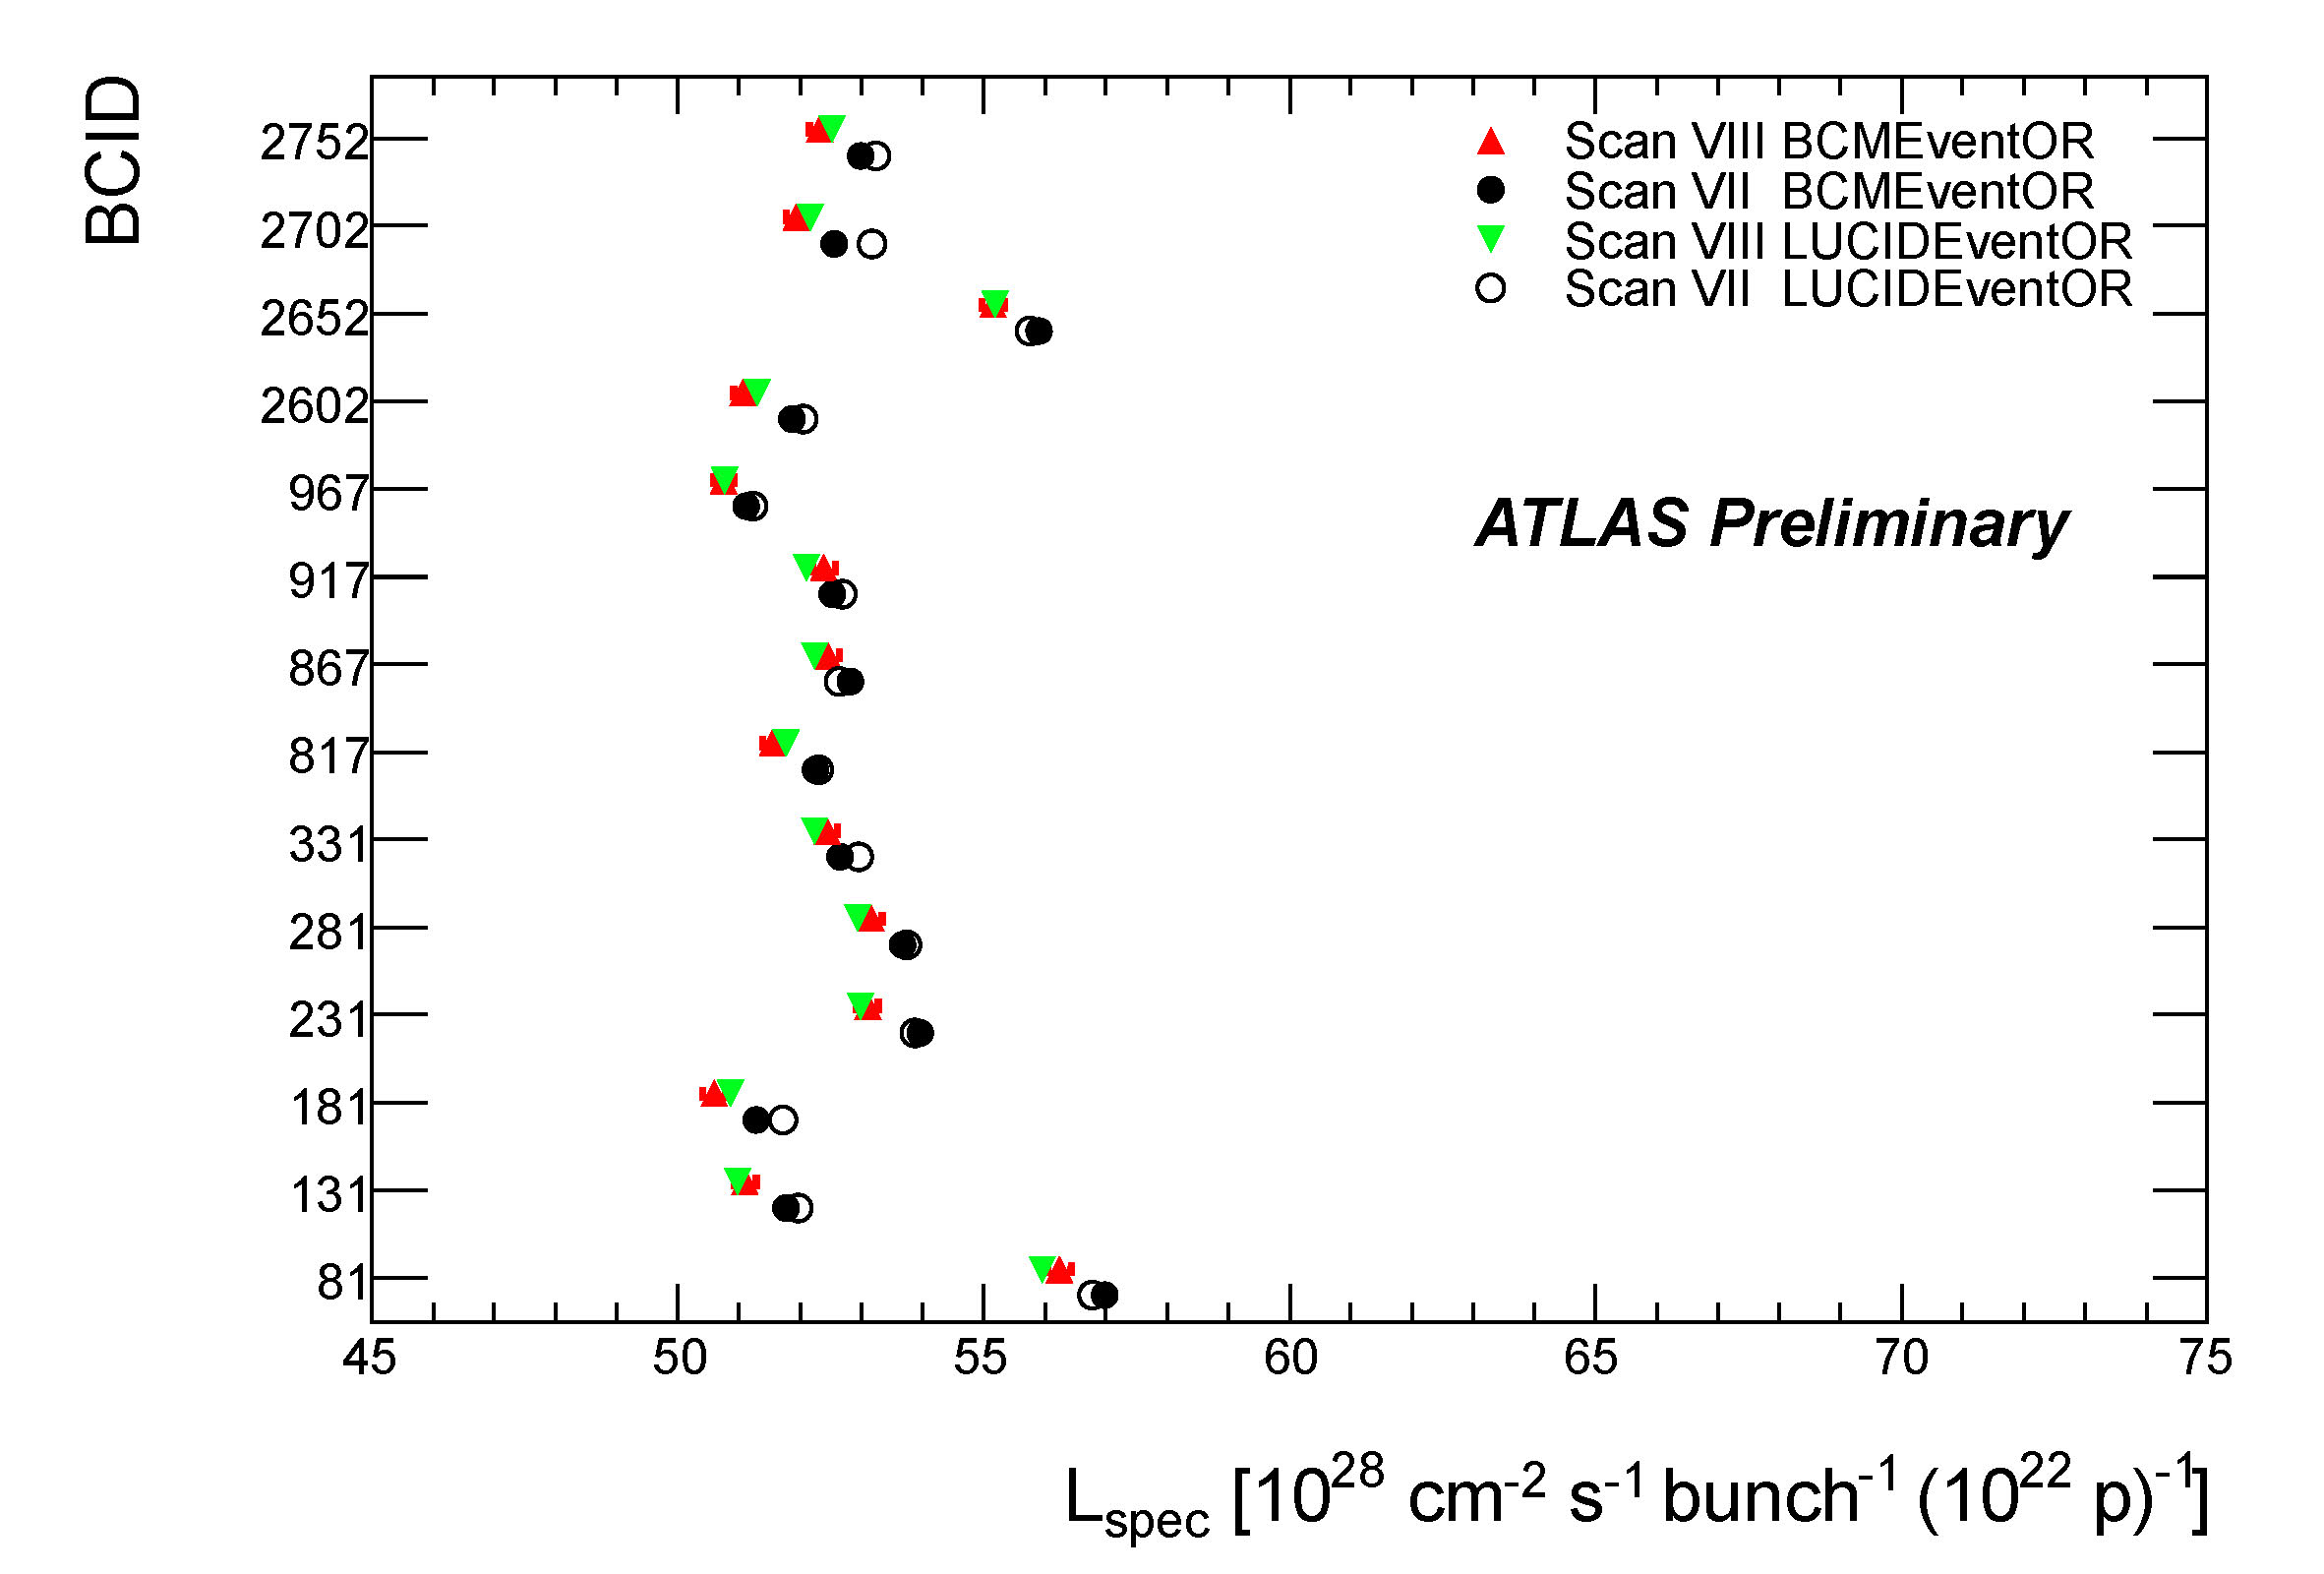 https://atlas.web.cern.ch/Atlas/GROUPS/DATAPREPARATION/PublicPlots/2011/Luminosity/ORLspecVsLUCID.jpg